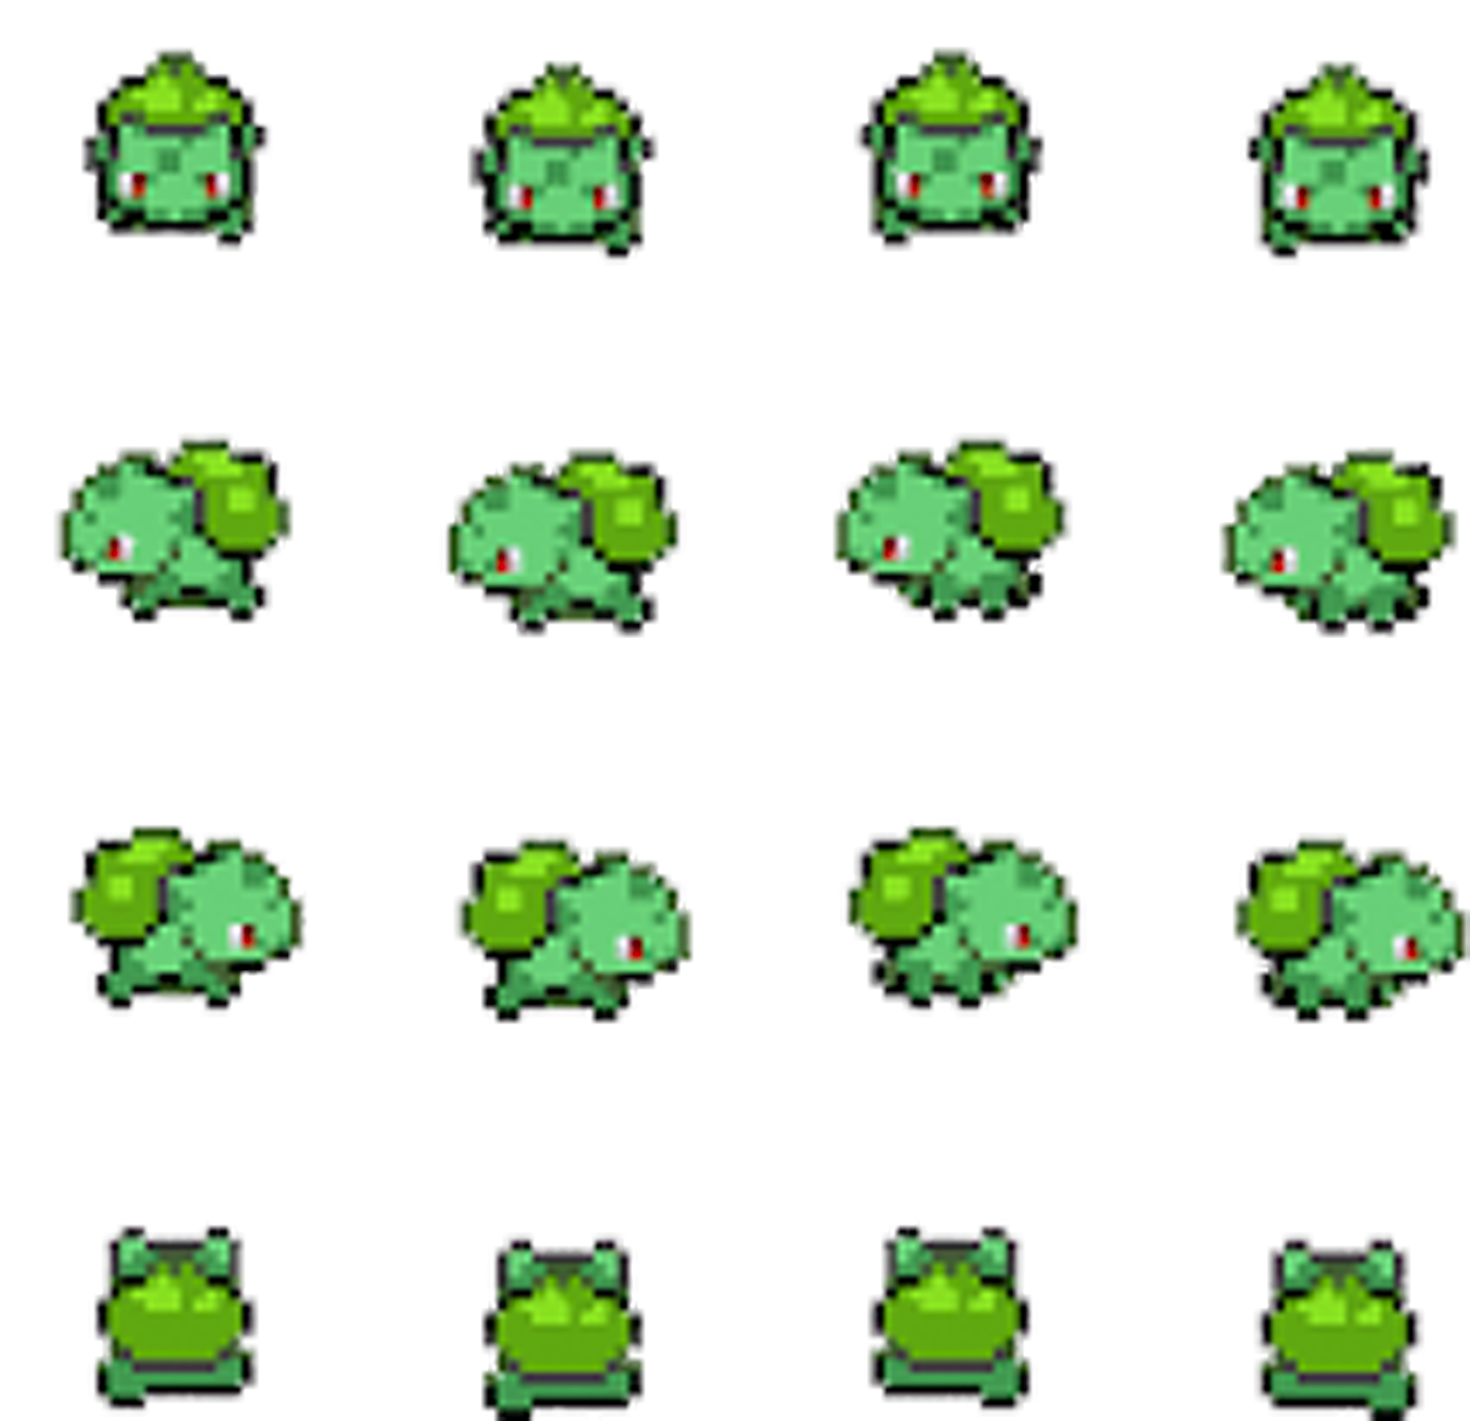 Download Bulbasaur Pokemon Shiny Bulbasaur Sprite Png Image With No Background Pngkey Com Or generation vi pokémon games. download bulbasaur pokemon shiny